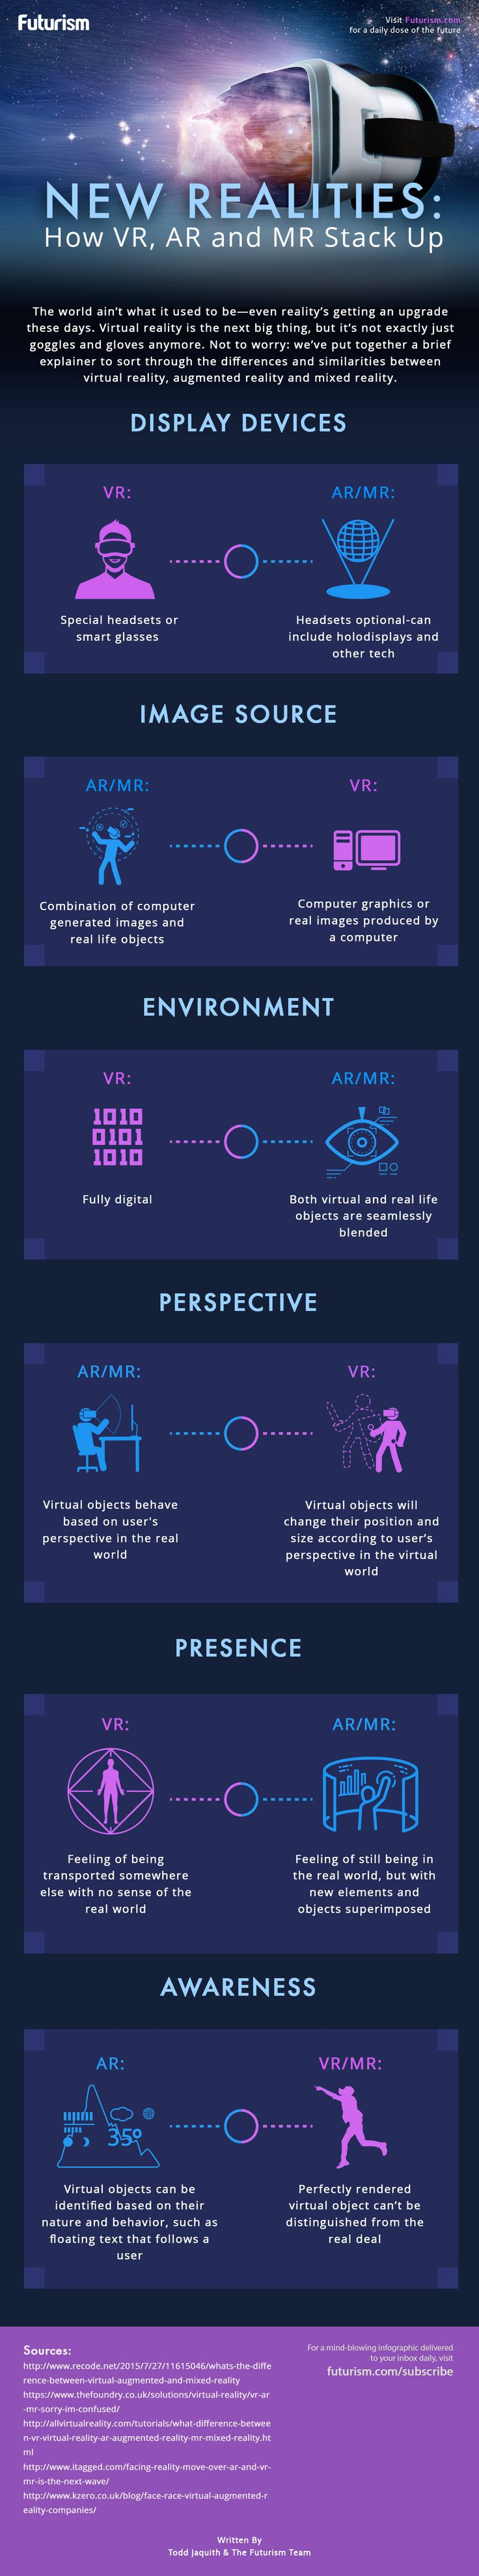 2016 has been a huge year for VR, AR, and MR. But what's the difference between them, and why does it matter? http://futurism.com/images/vr-ar-and-mr-whats-the-difference-infographic-2/?utm_campaign=coschedule&utm_source=pinterest&utm_medium=Futurism&ut